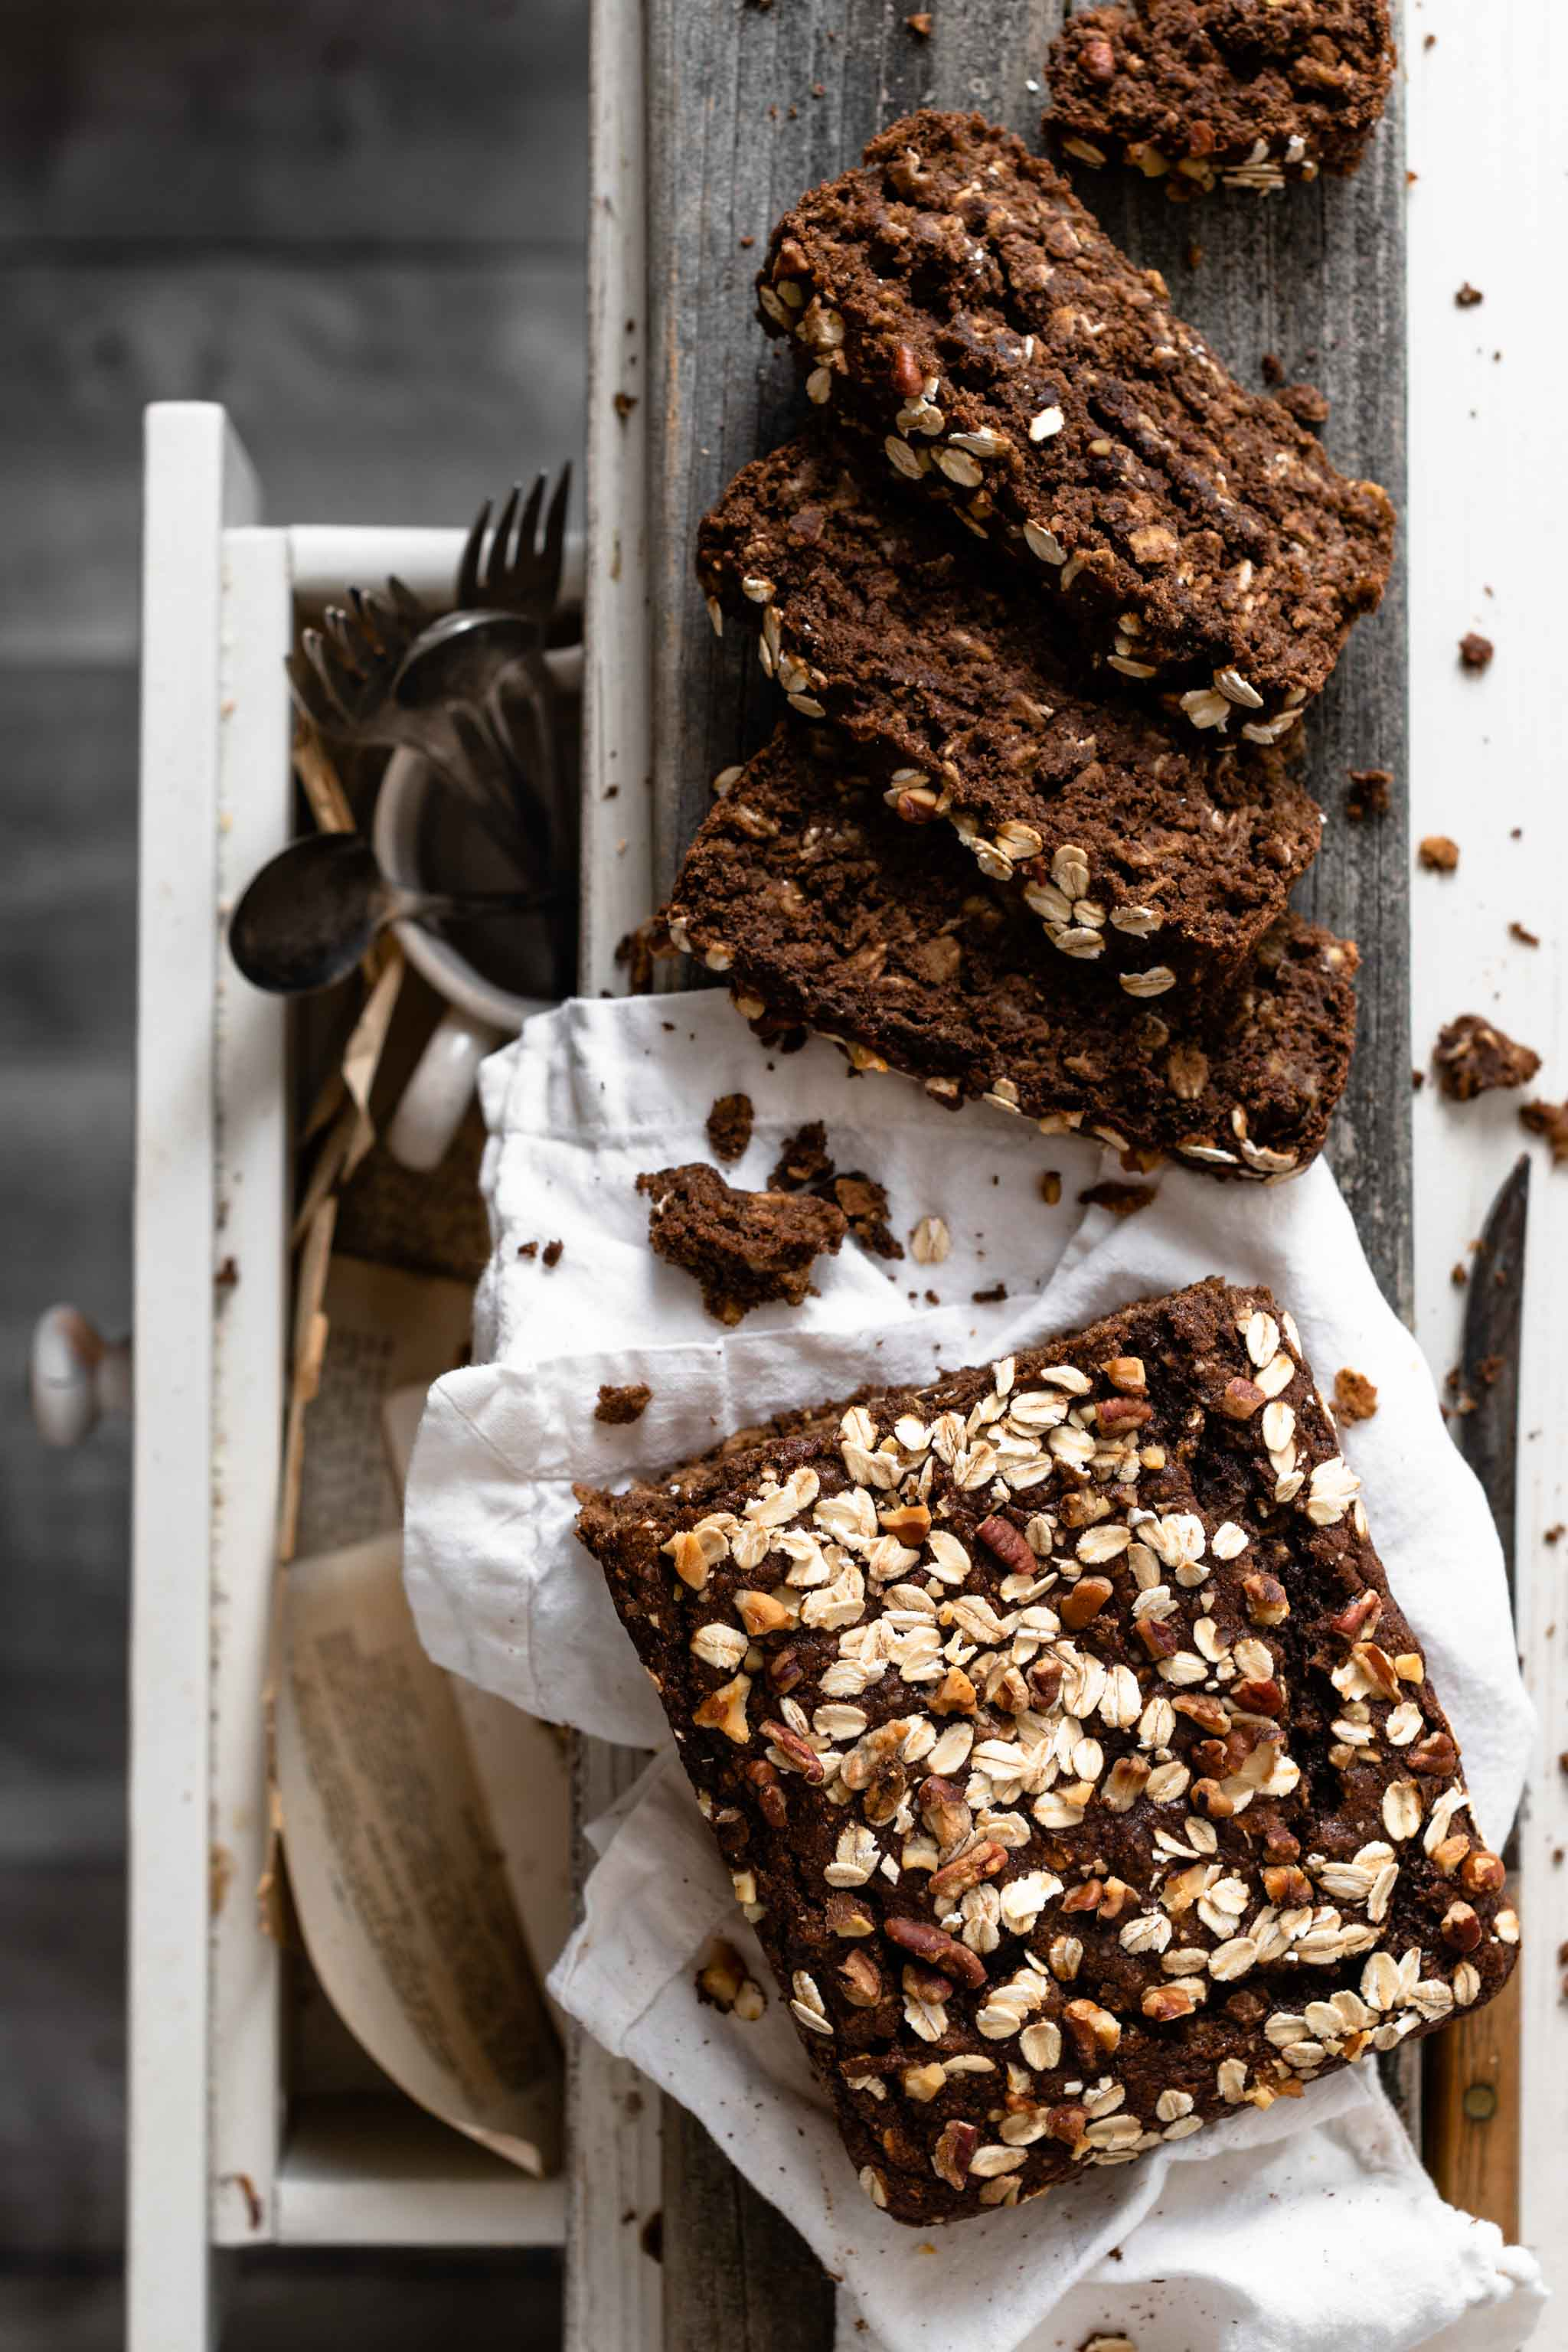 Recipe for Chocolate Banana Oat Bread.